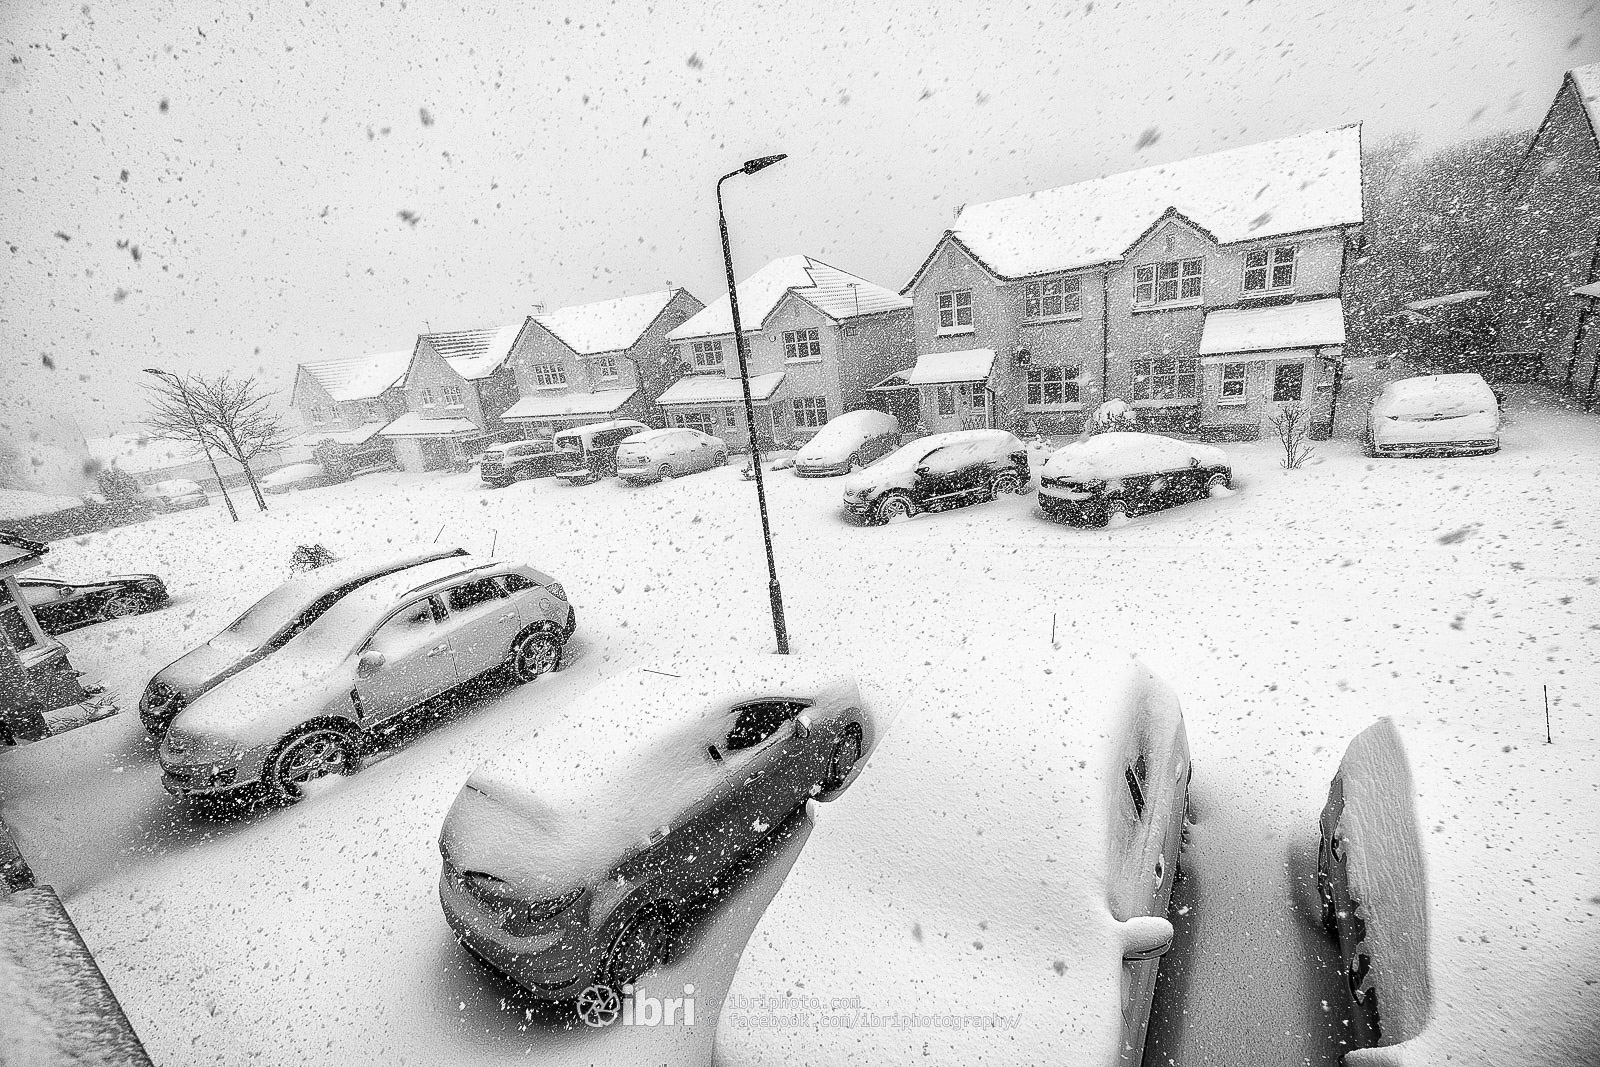 Beast from the East welcomes in March. The last days of winter and the first of Spring brought down some mighty unseasonal weather for parts of the UK.